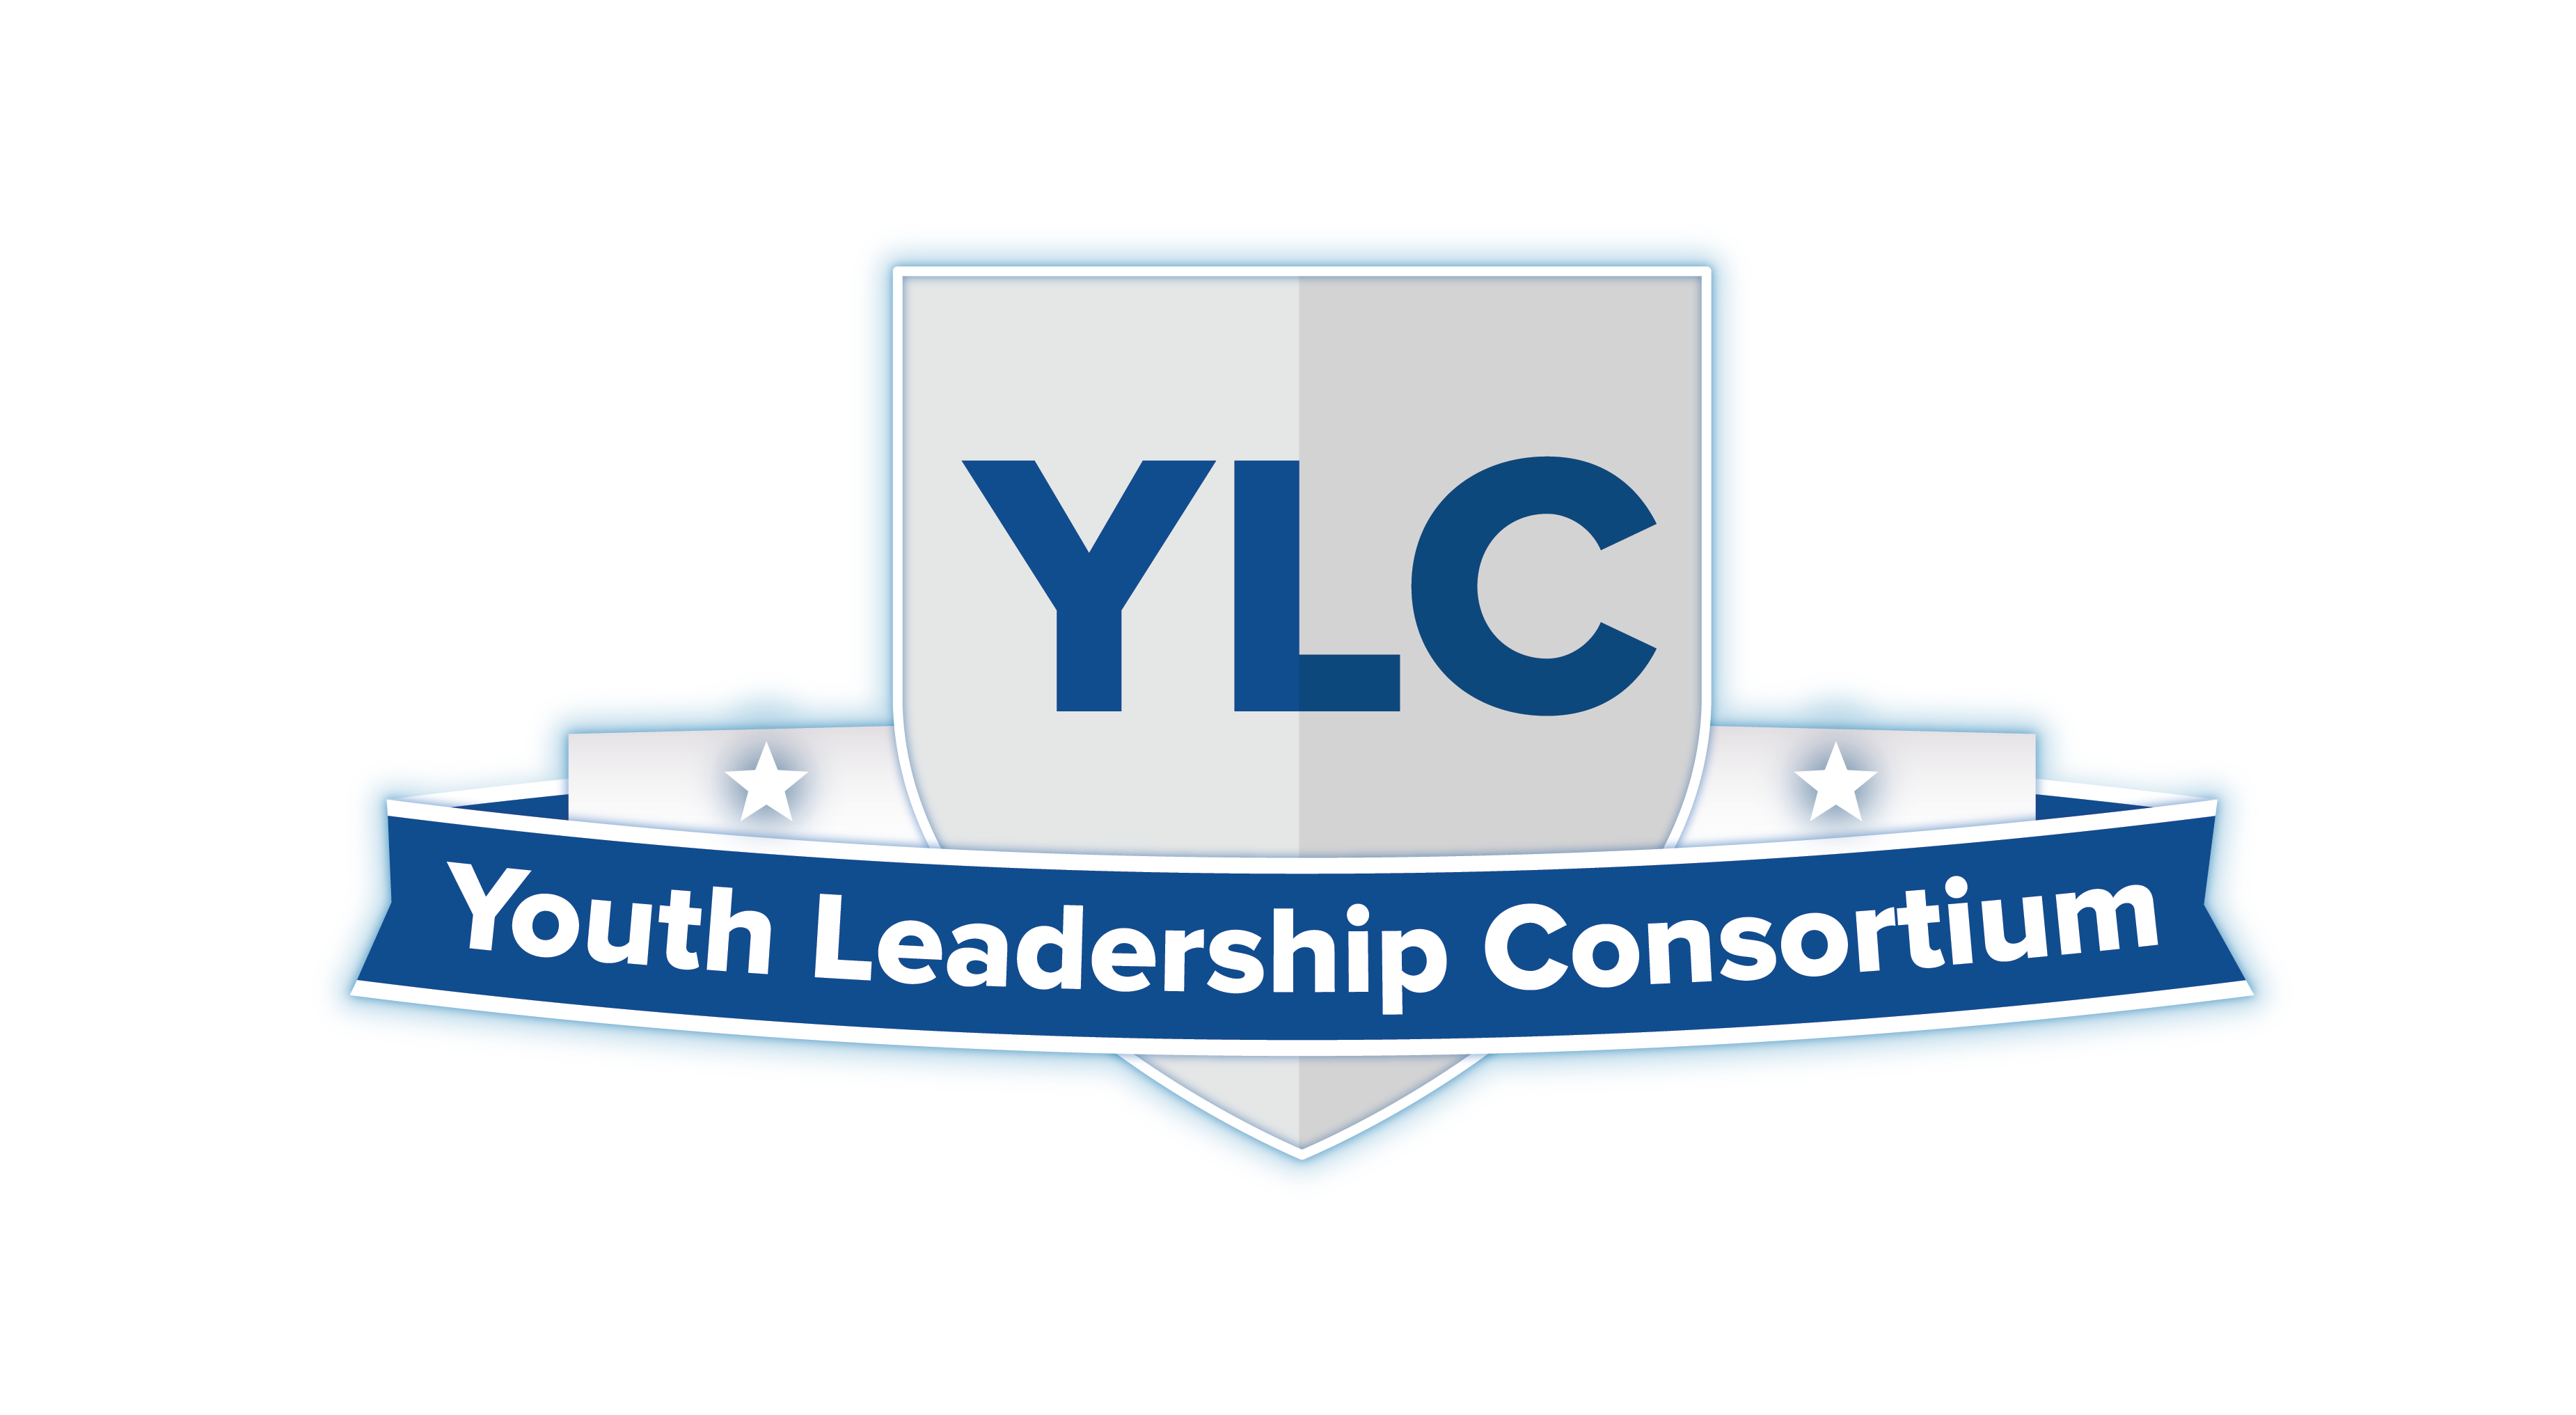 Youth Leadership Consortium